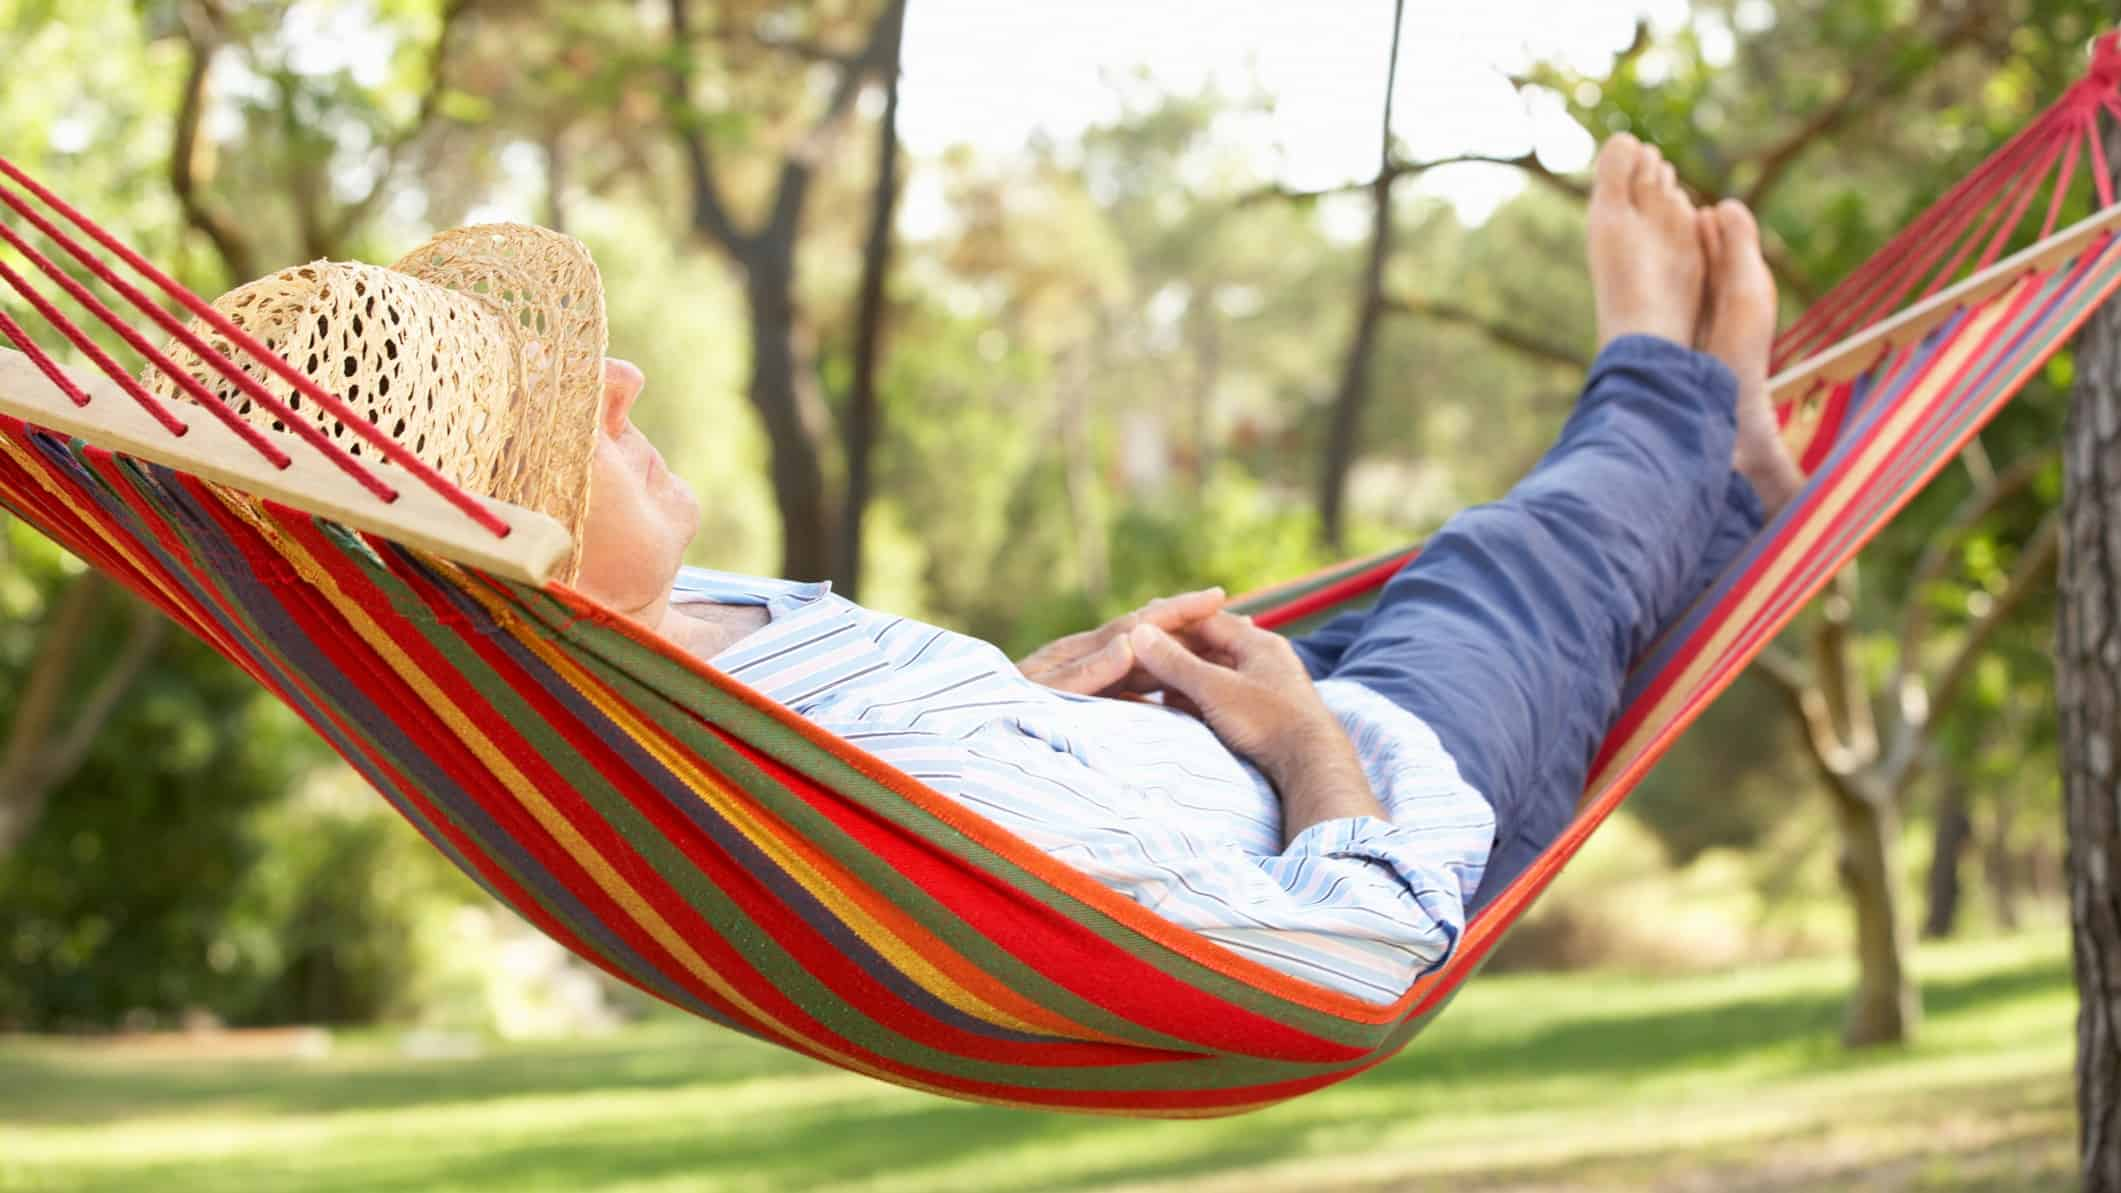 Retired man reclining in hammock with feet up, retire early